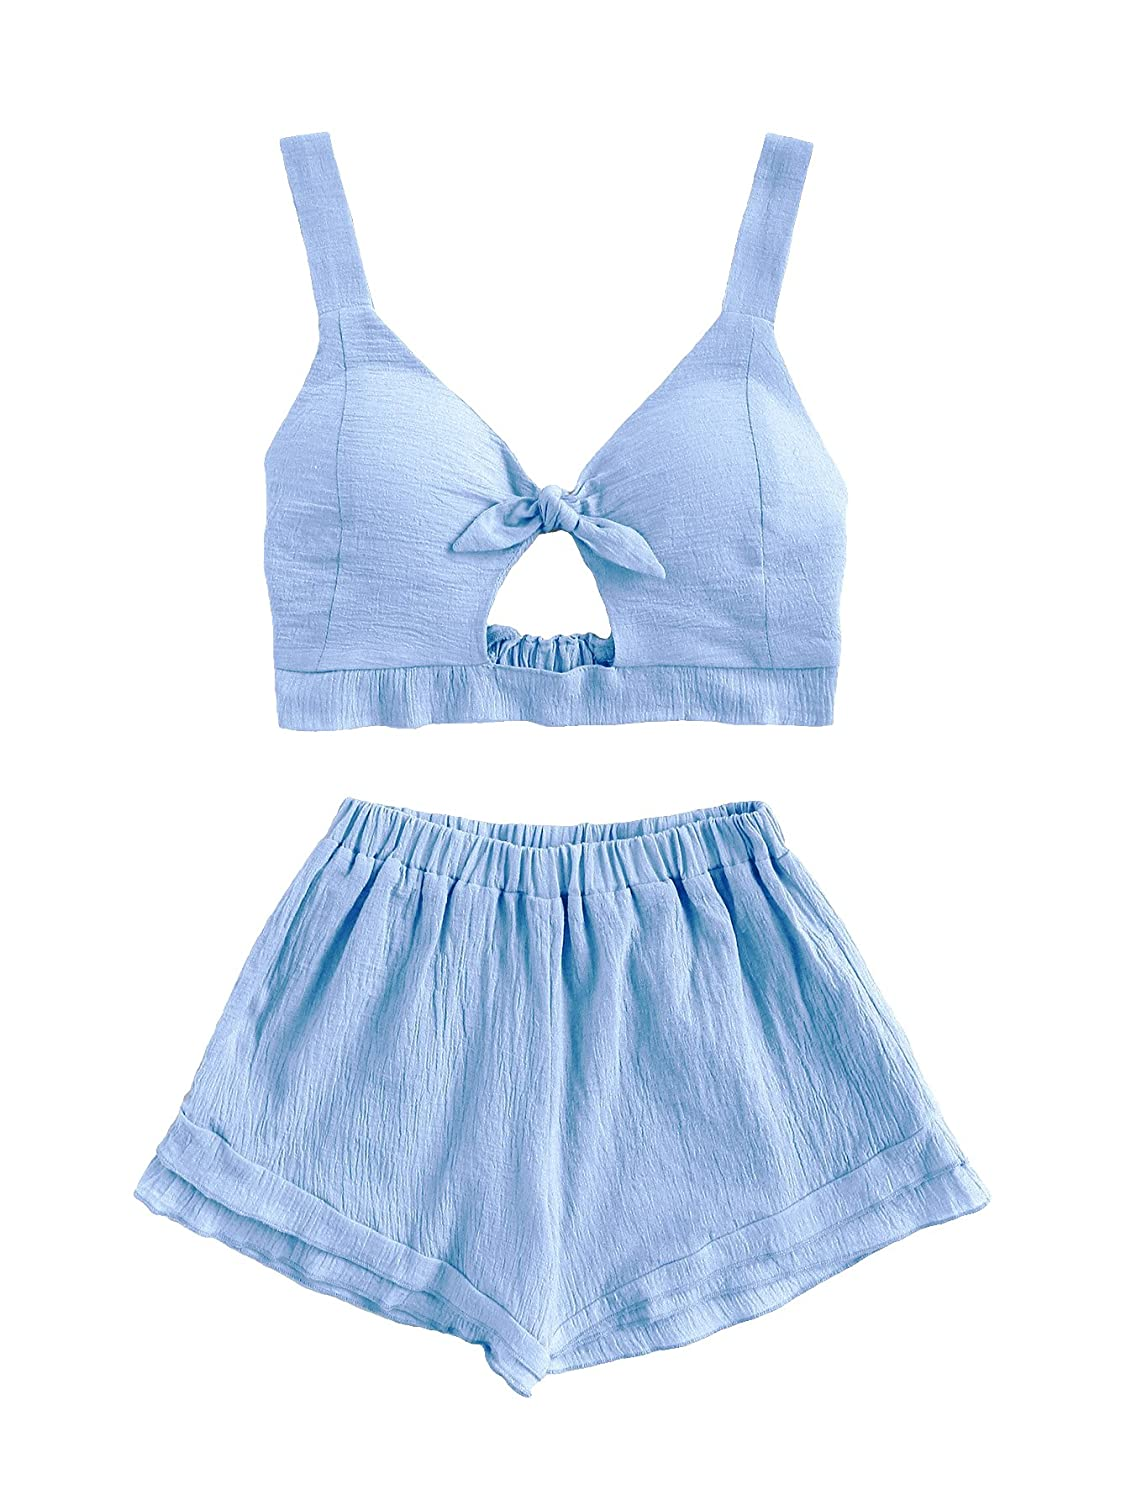 1e35fb3293d2 ... Cotton;Ginger / Blue / Burgundy / Pink:65% Cotton, 35% Polyester The  items is a little see through.Sleeveless Backless Crop Top Shorts Two  Pieces Set